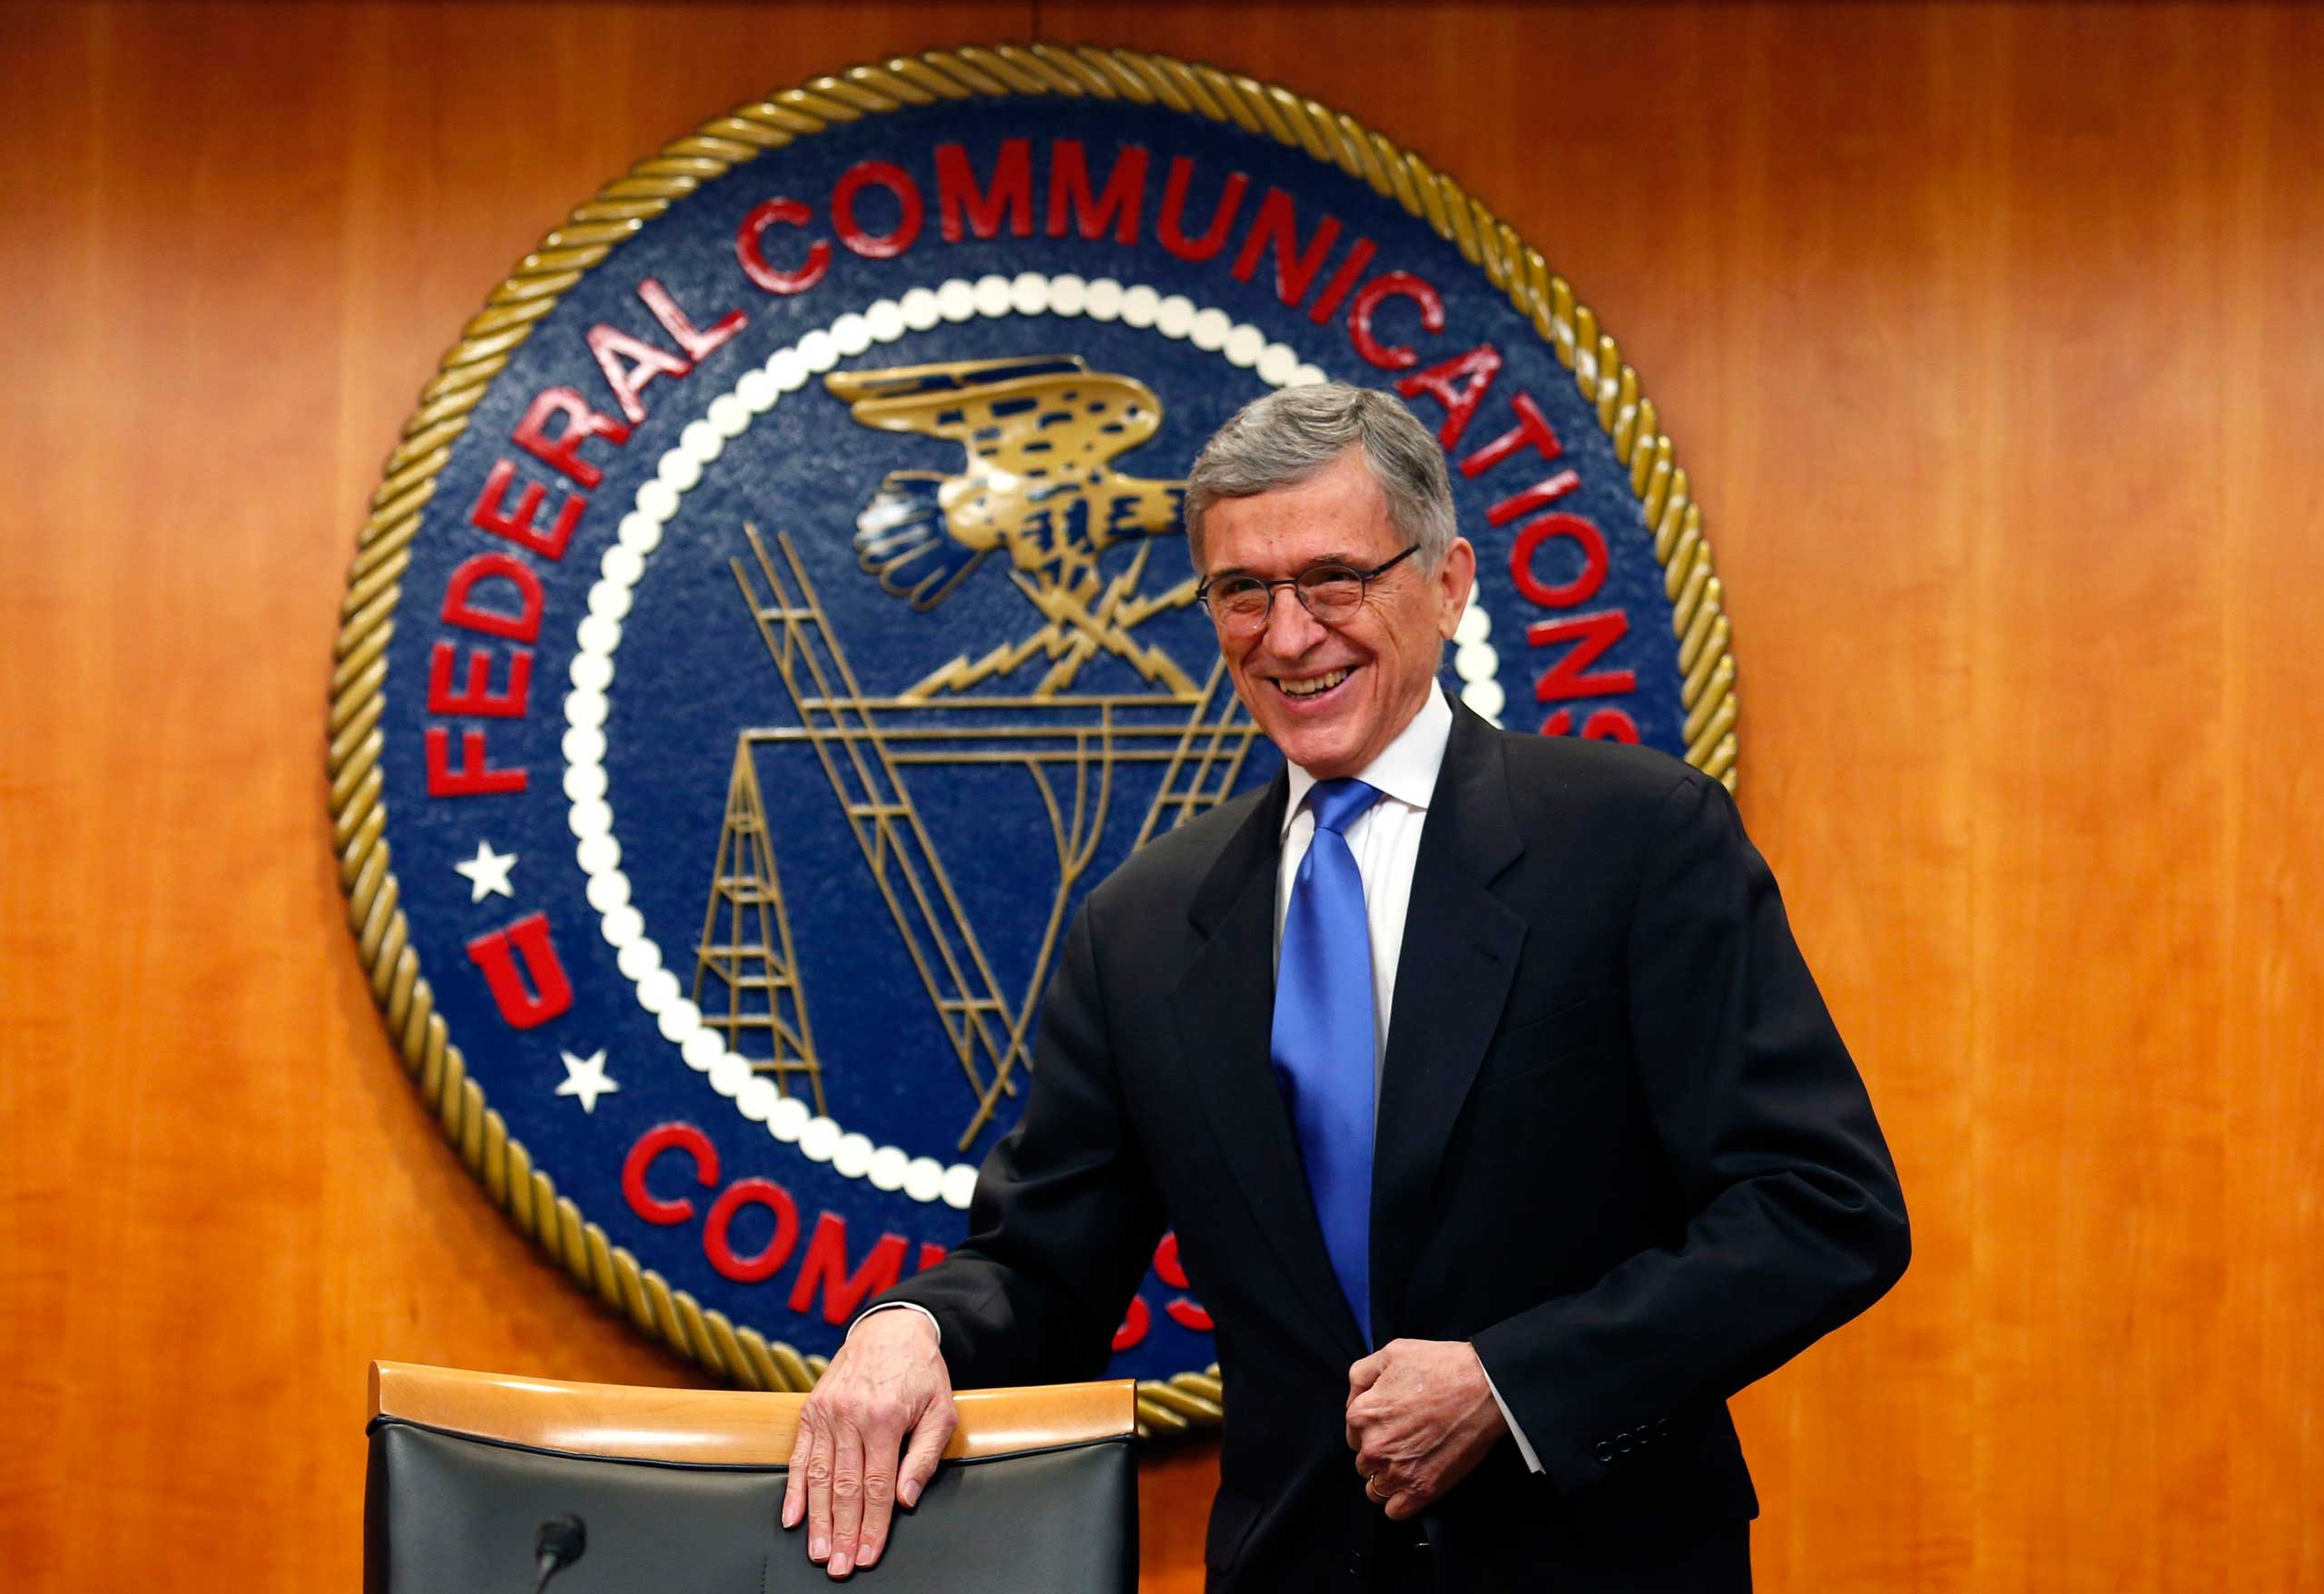 Federal Communications Commission (FCC) Chairman Tom Wheeler arrives at a FCC Net Neutrality hearing in Washington on Feb. 26, 2015.